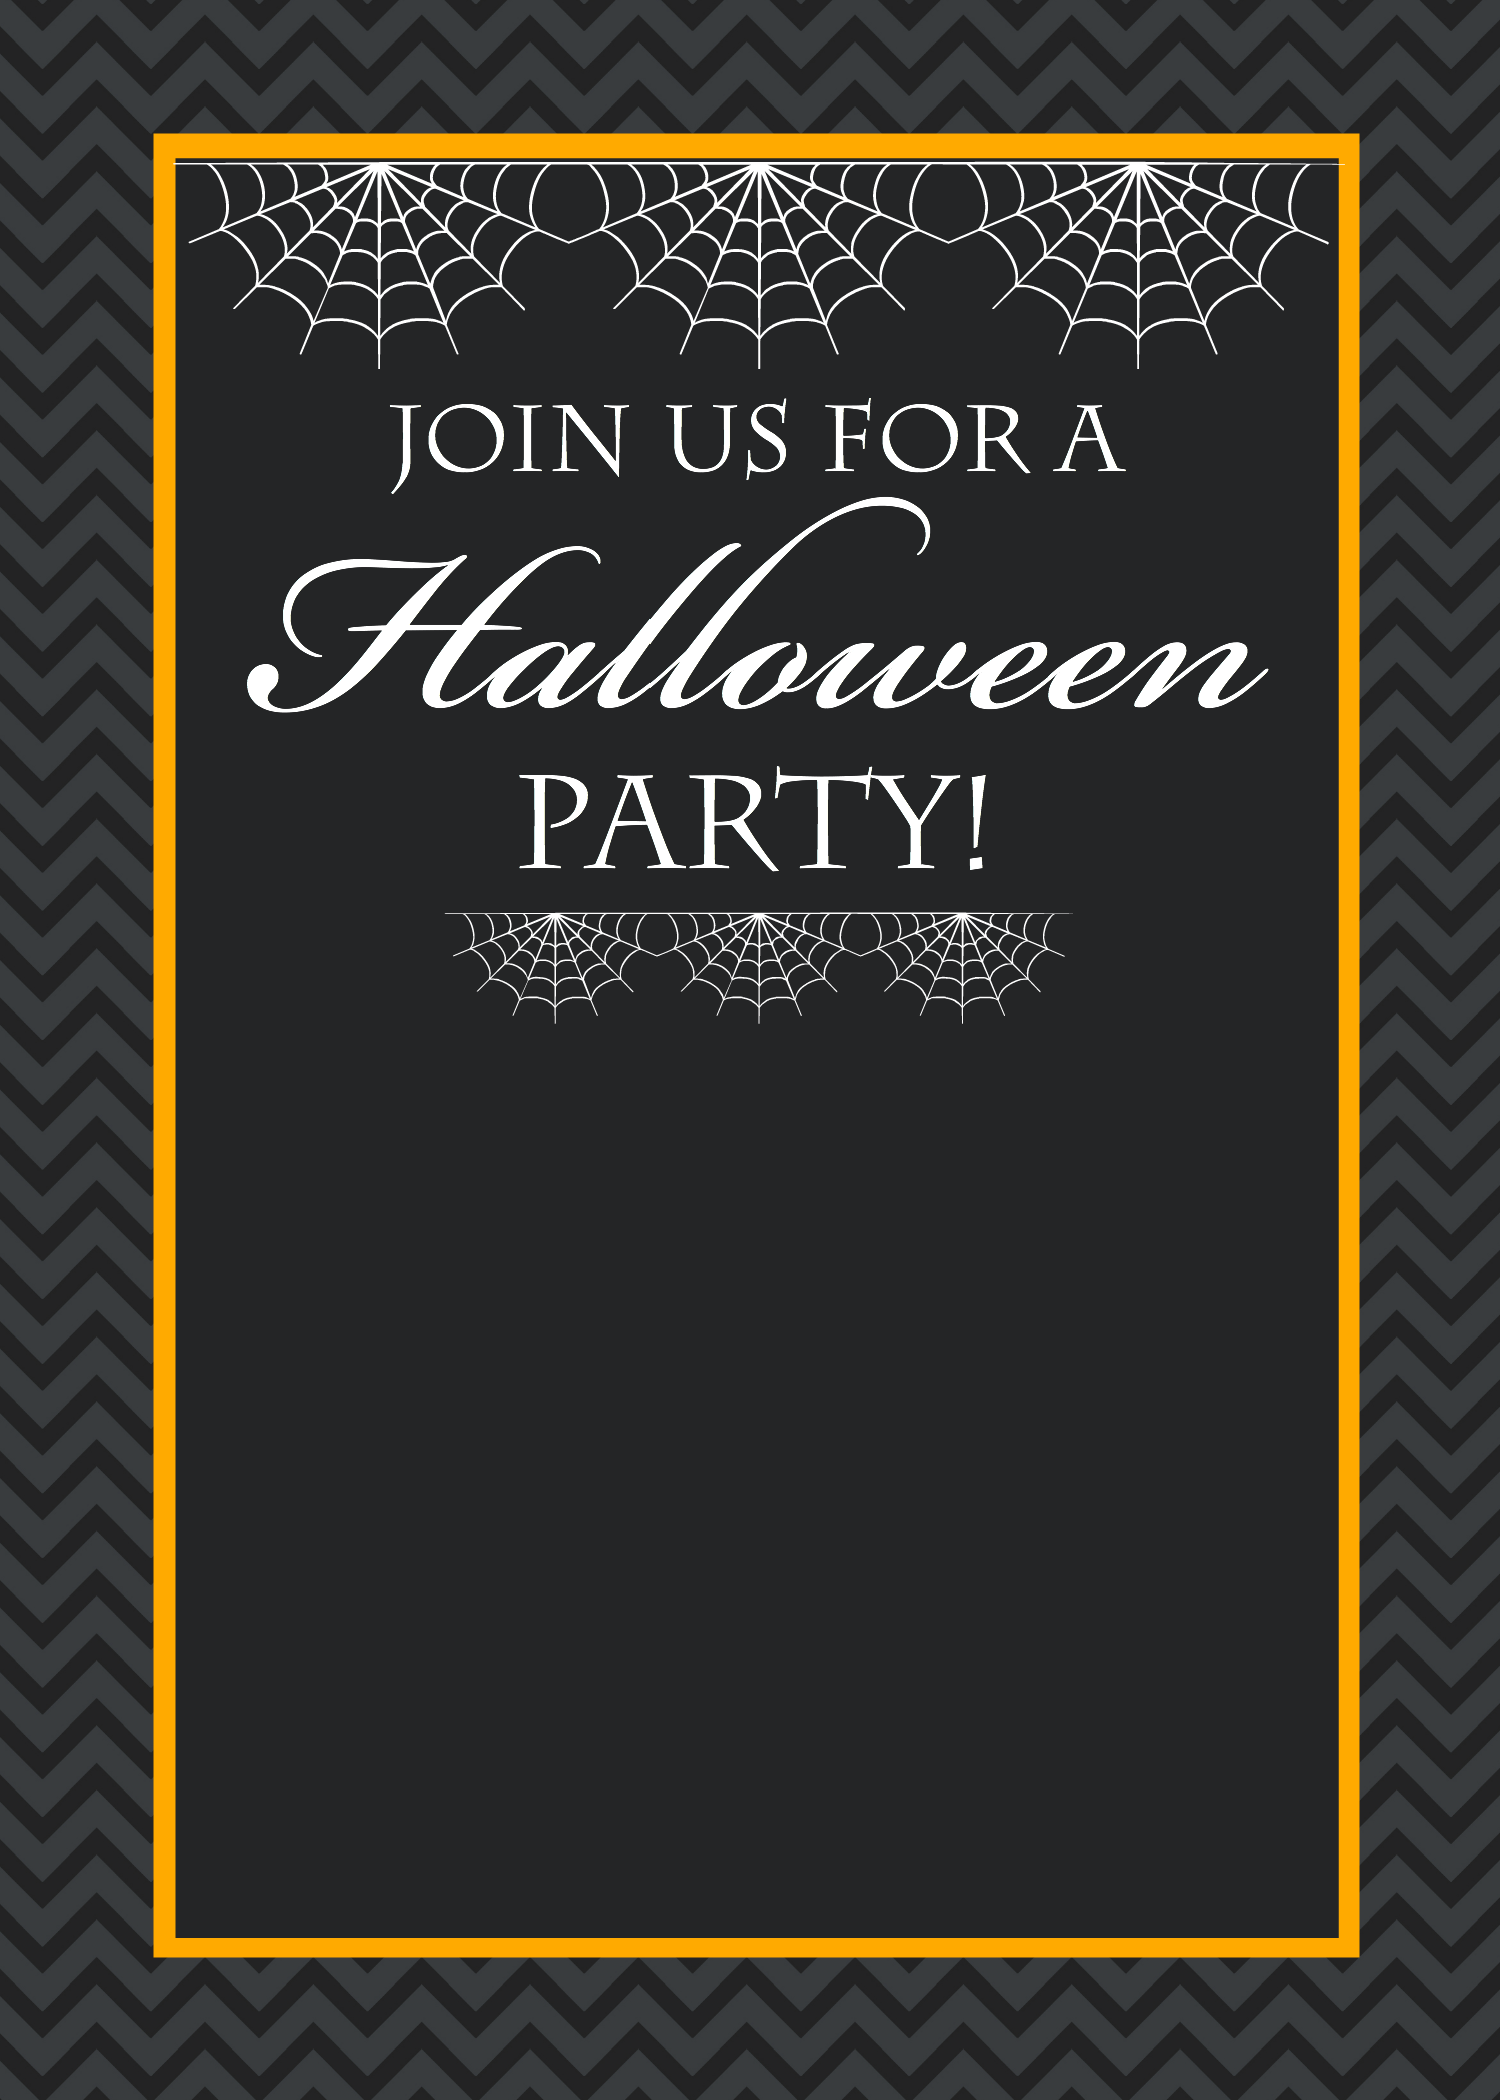 Party Invitation » Free Printable Halloween Party Invitation ...